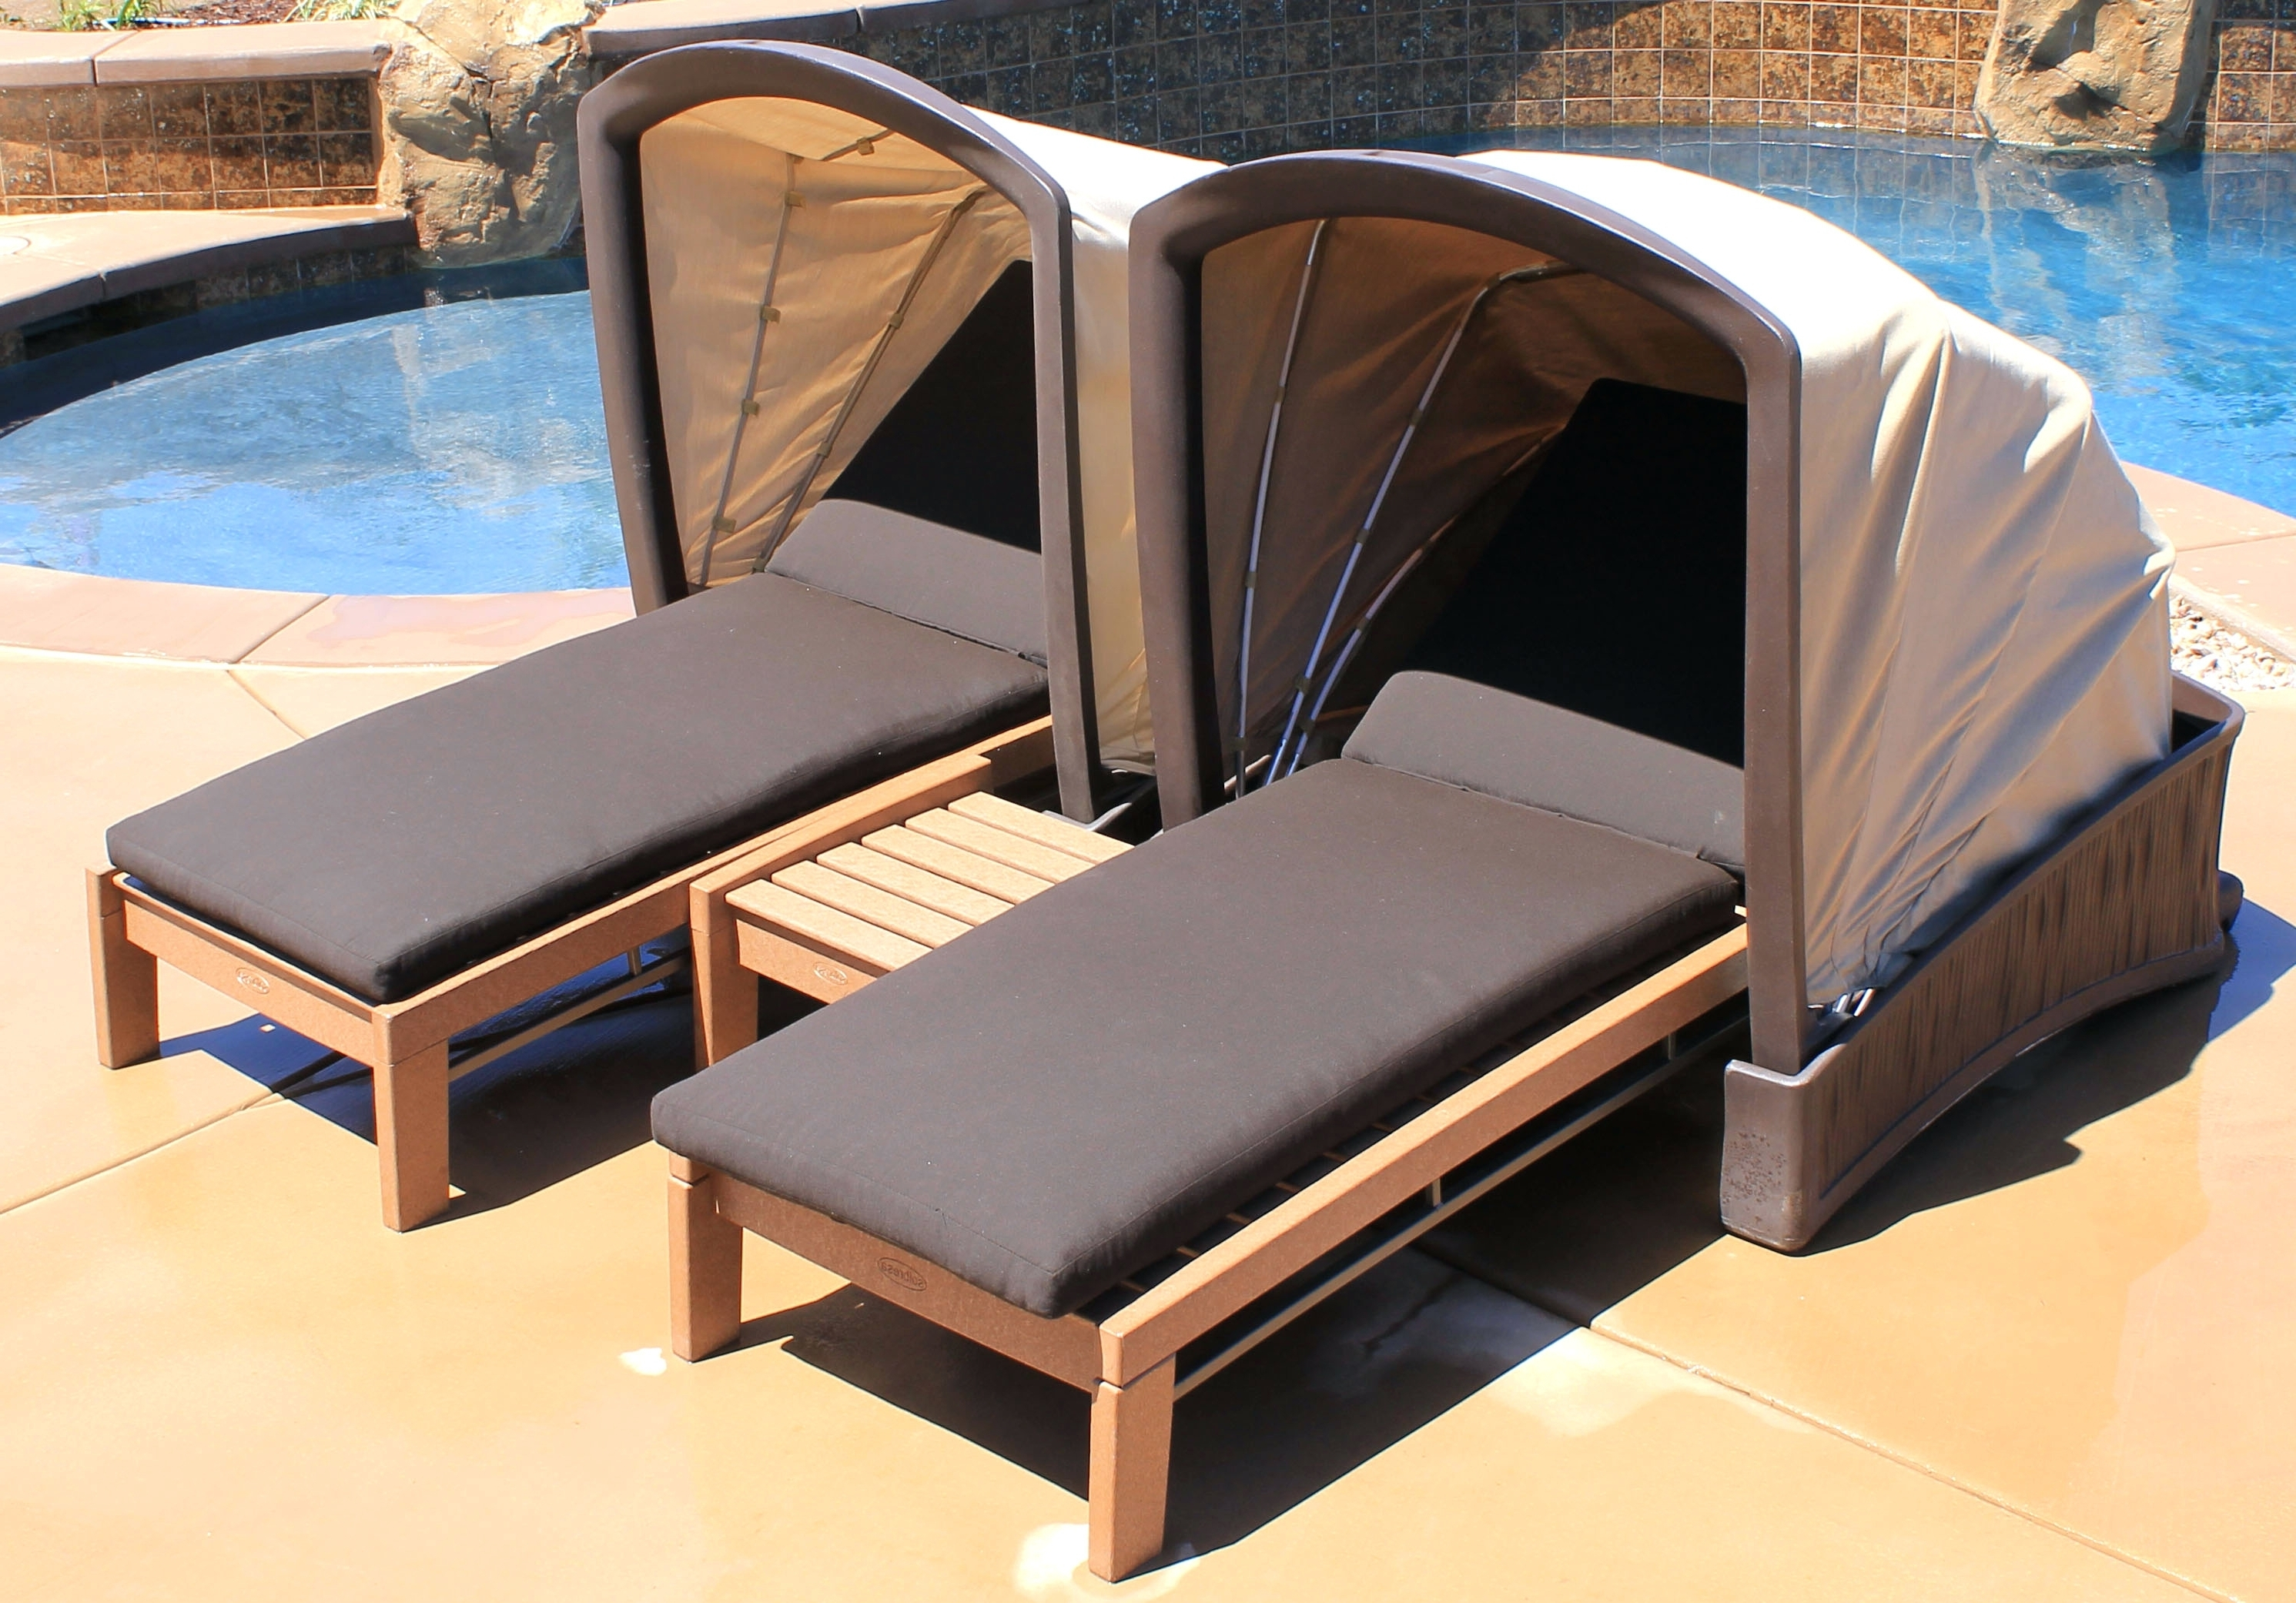 Newest Hotel Style Lounge Chairs • Lounge Chairs Ideas Intended For Hotel Chaise Lounge Chairs (View 2 of 15)